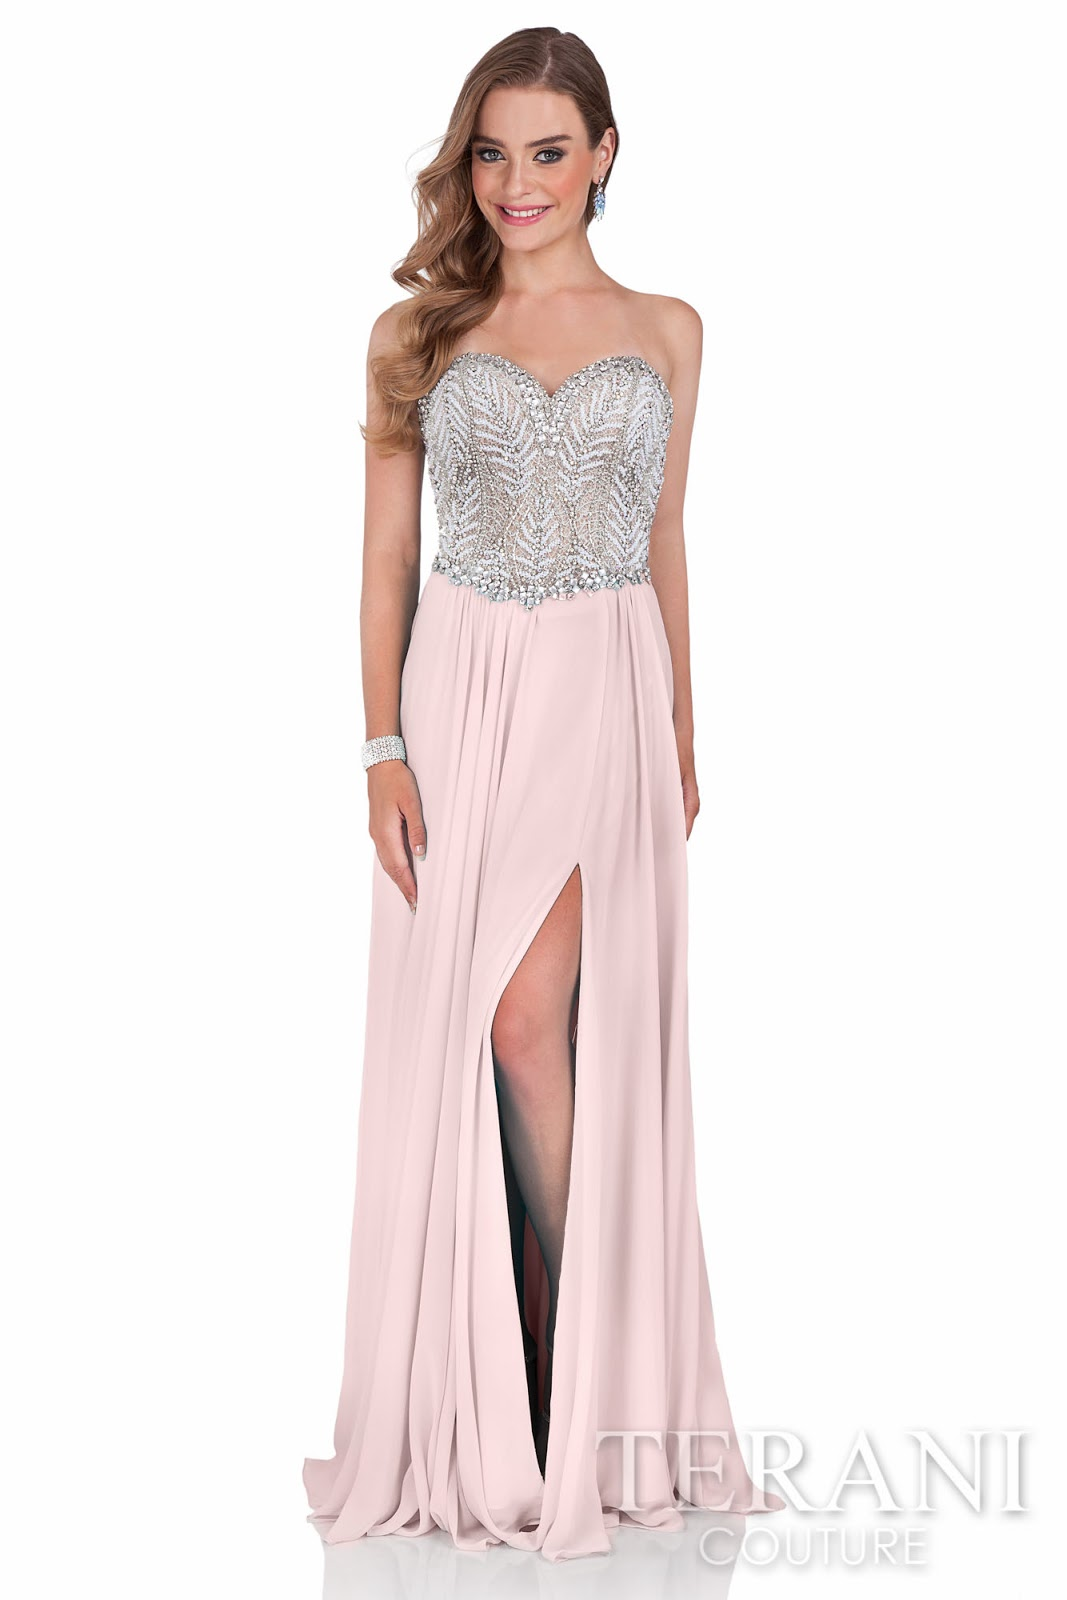 Prom 2016 | New Arrivals Of Prom Dresses For Ladies By ...